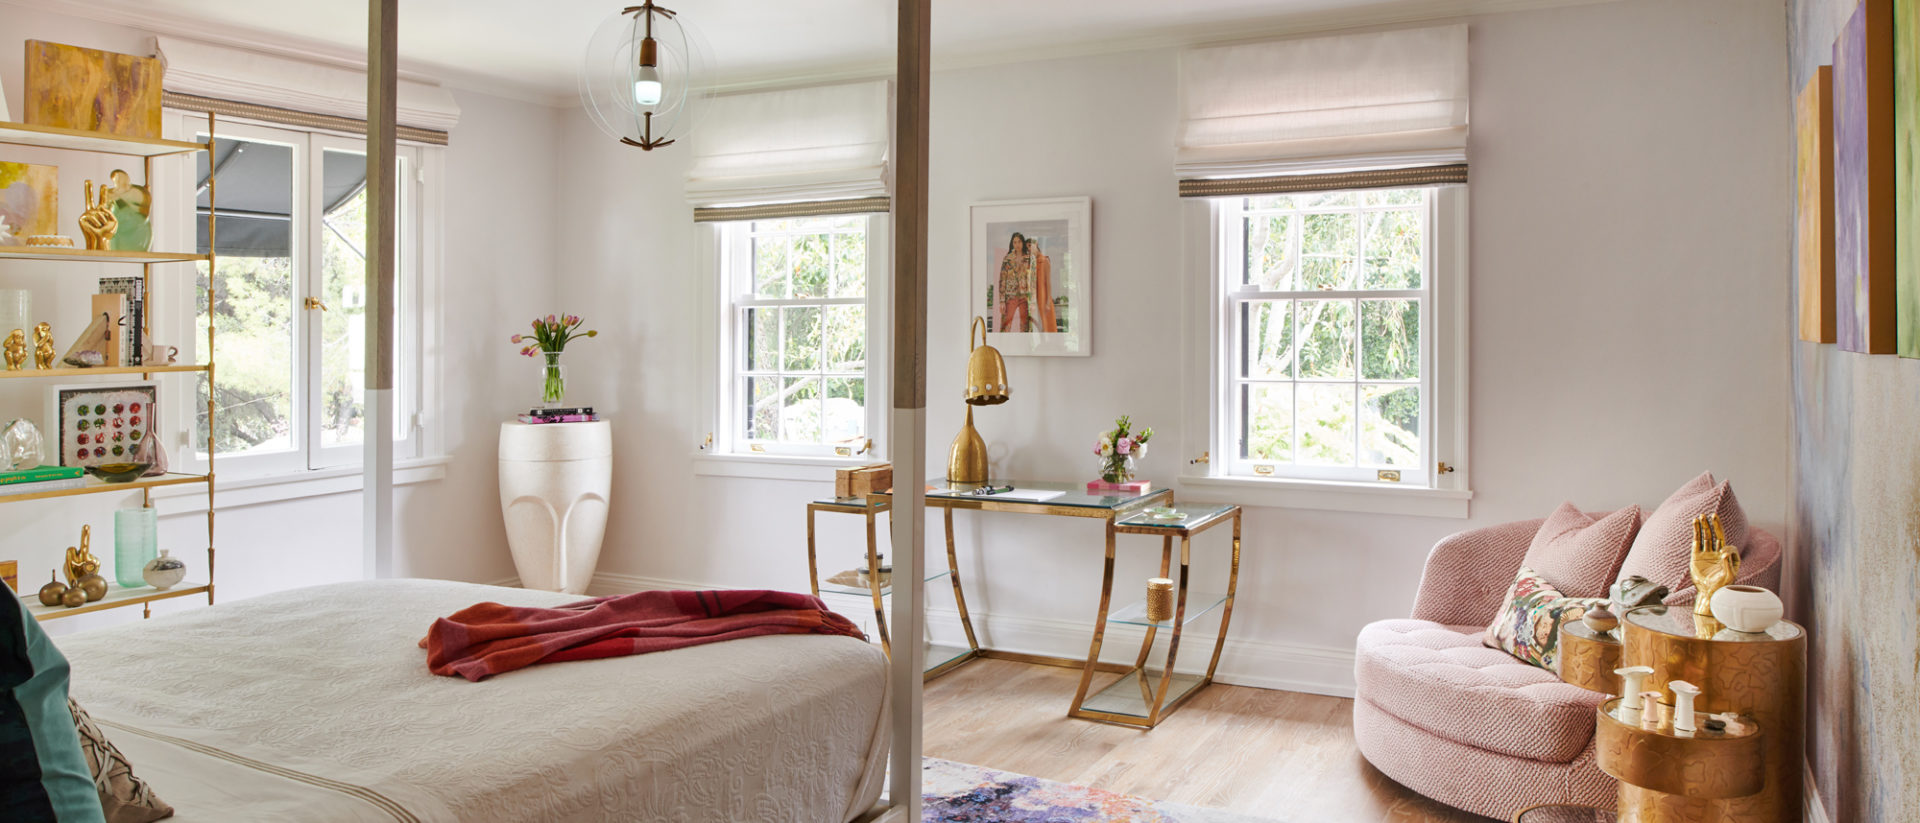 Cozy Stylish Chic - Old Pasadena Home Furnishings | Cozy ... on apartment living room interior design, black and white living room interior design, one room cabin interior design, one room apartment design,